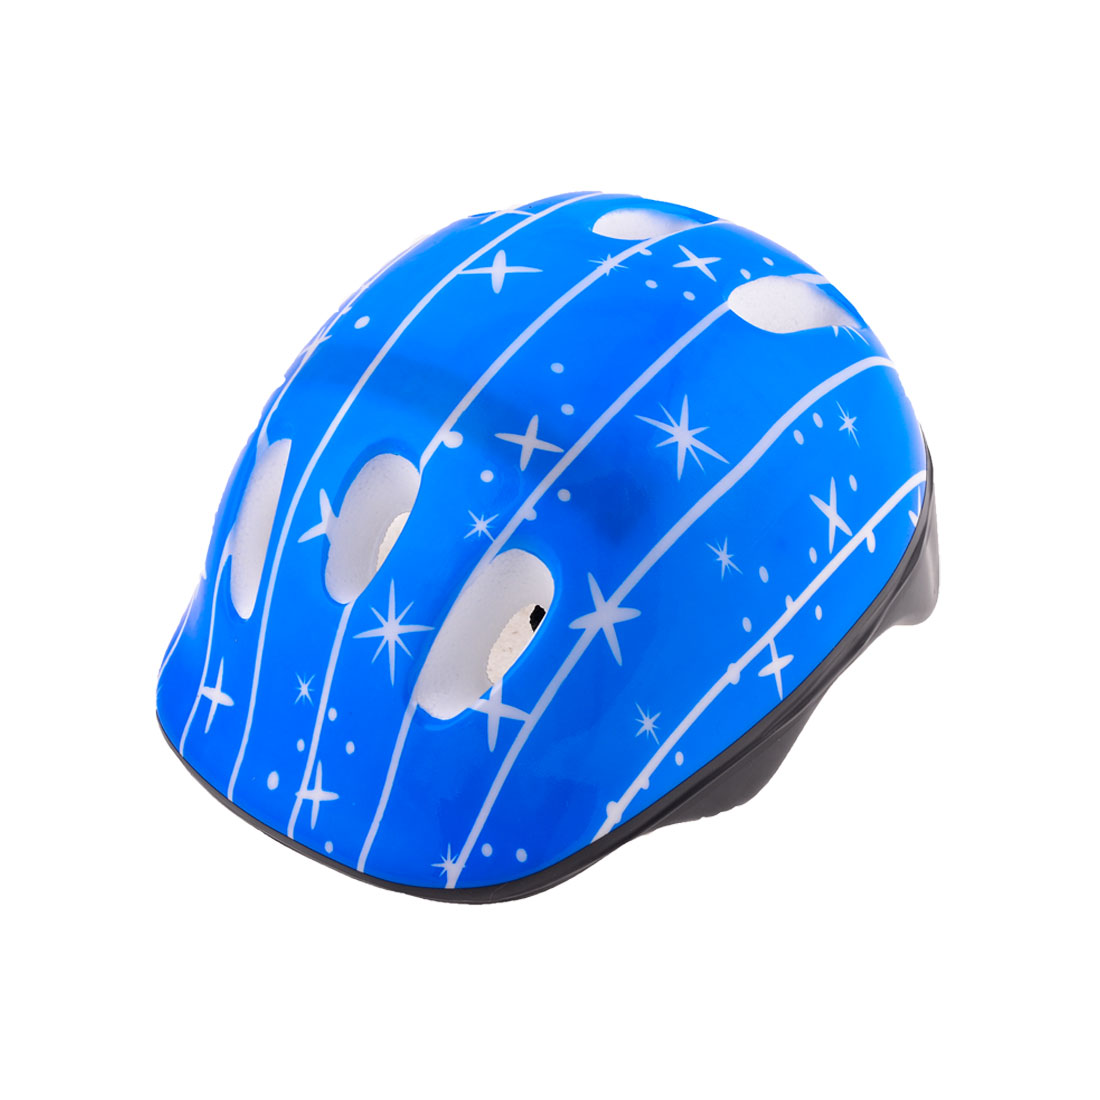 Blue Sparkle Pattern Foam Sports Cycling Skating Skiing Helmet